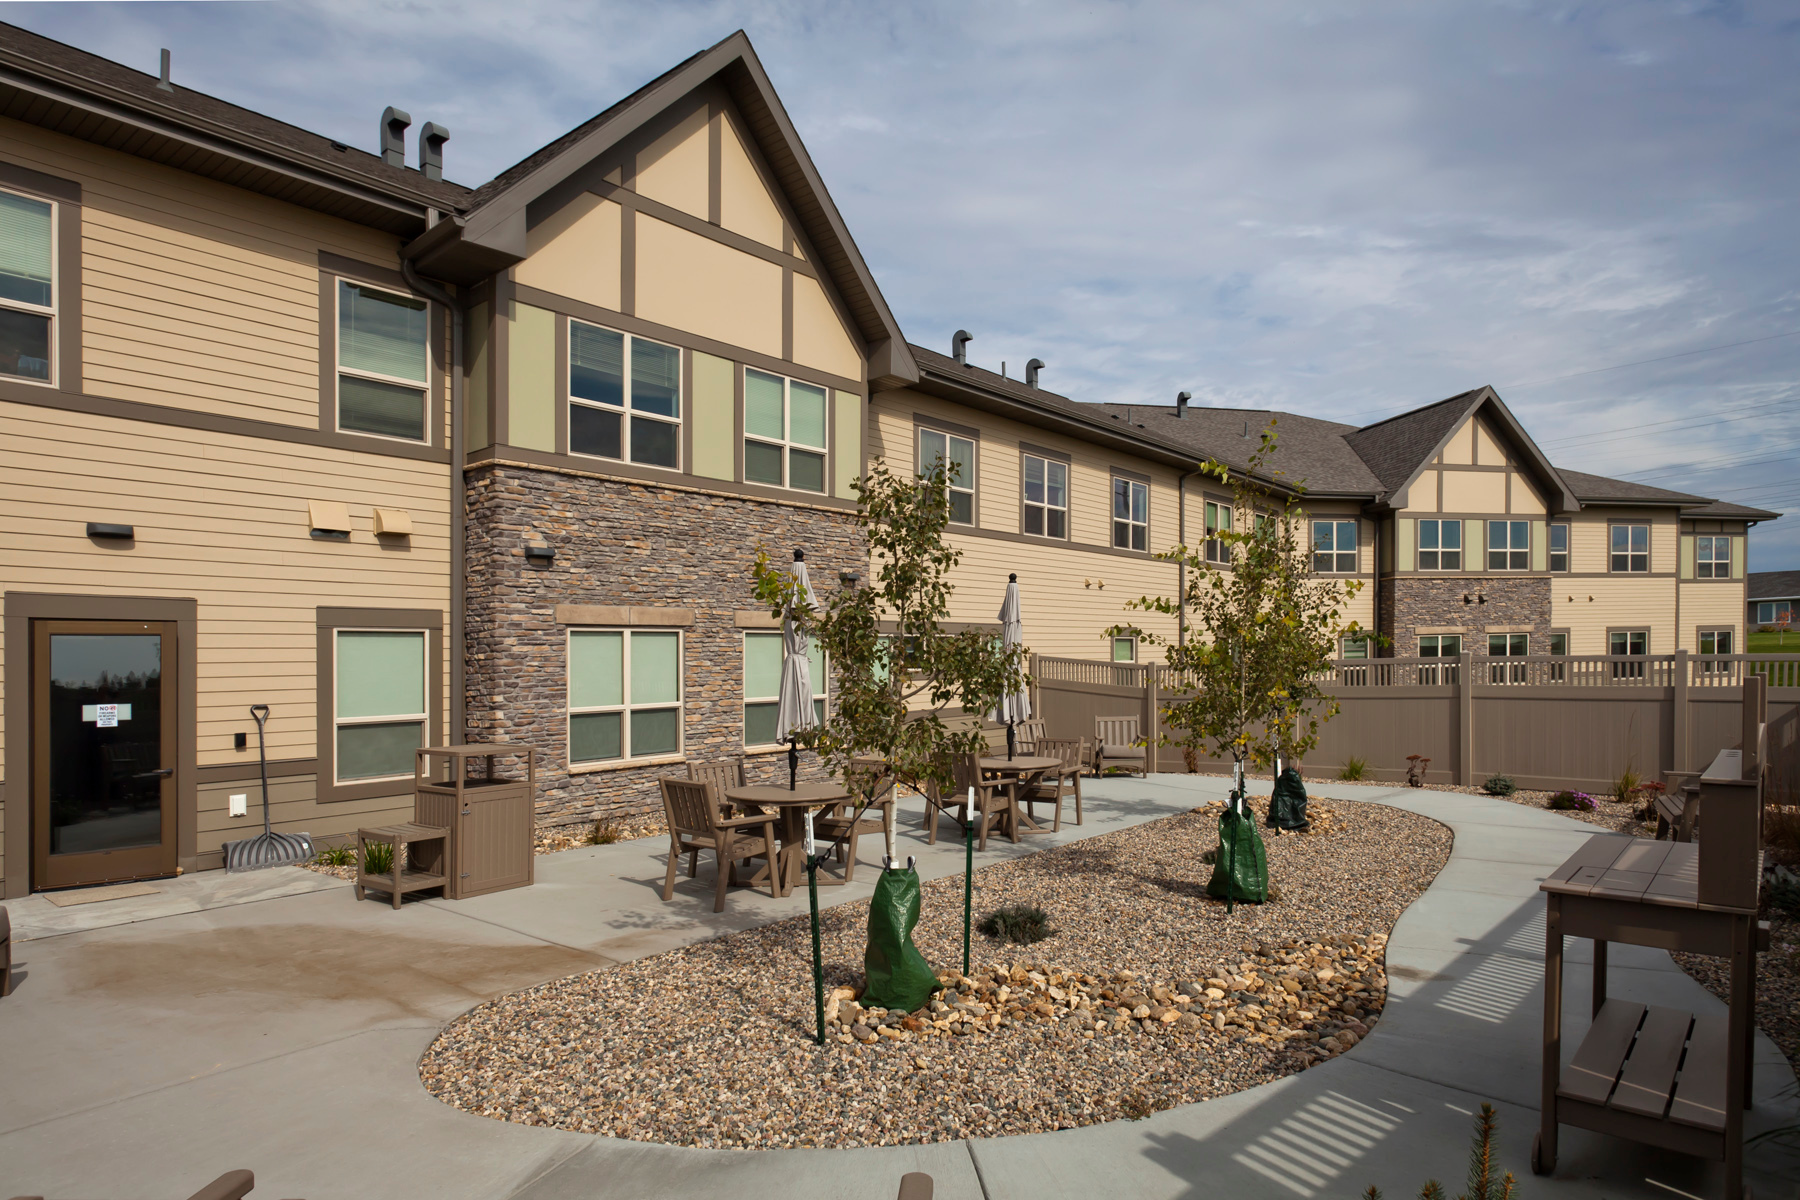 The enclosed patio at Elim Baptist Health Care Center in Bismarck, North Dakota, built by CBS Construction Services.